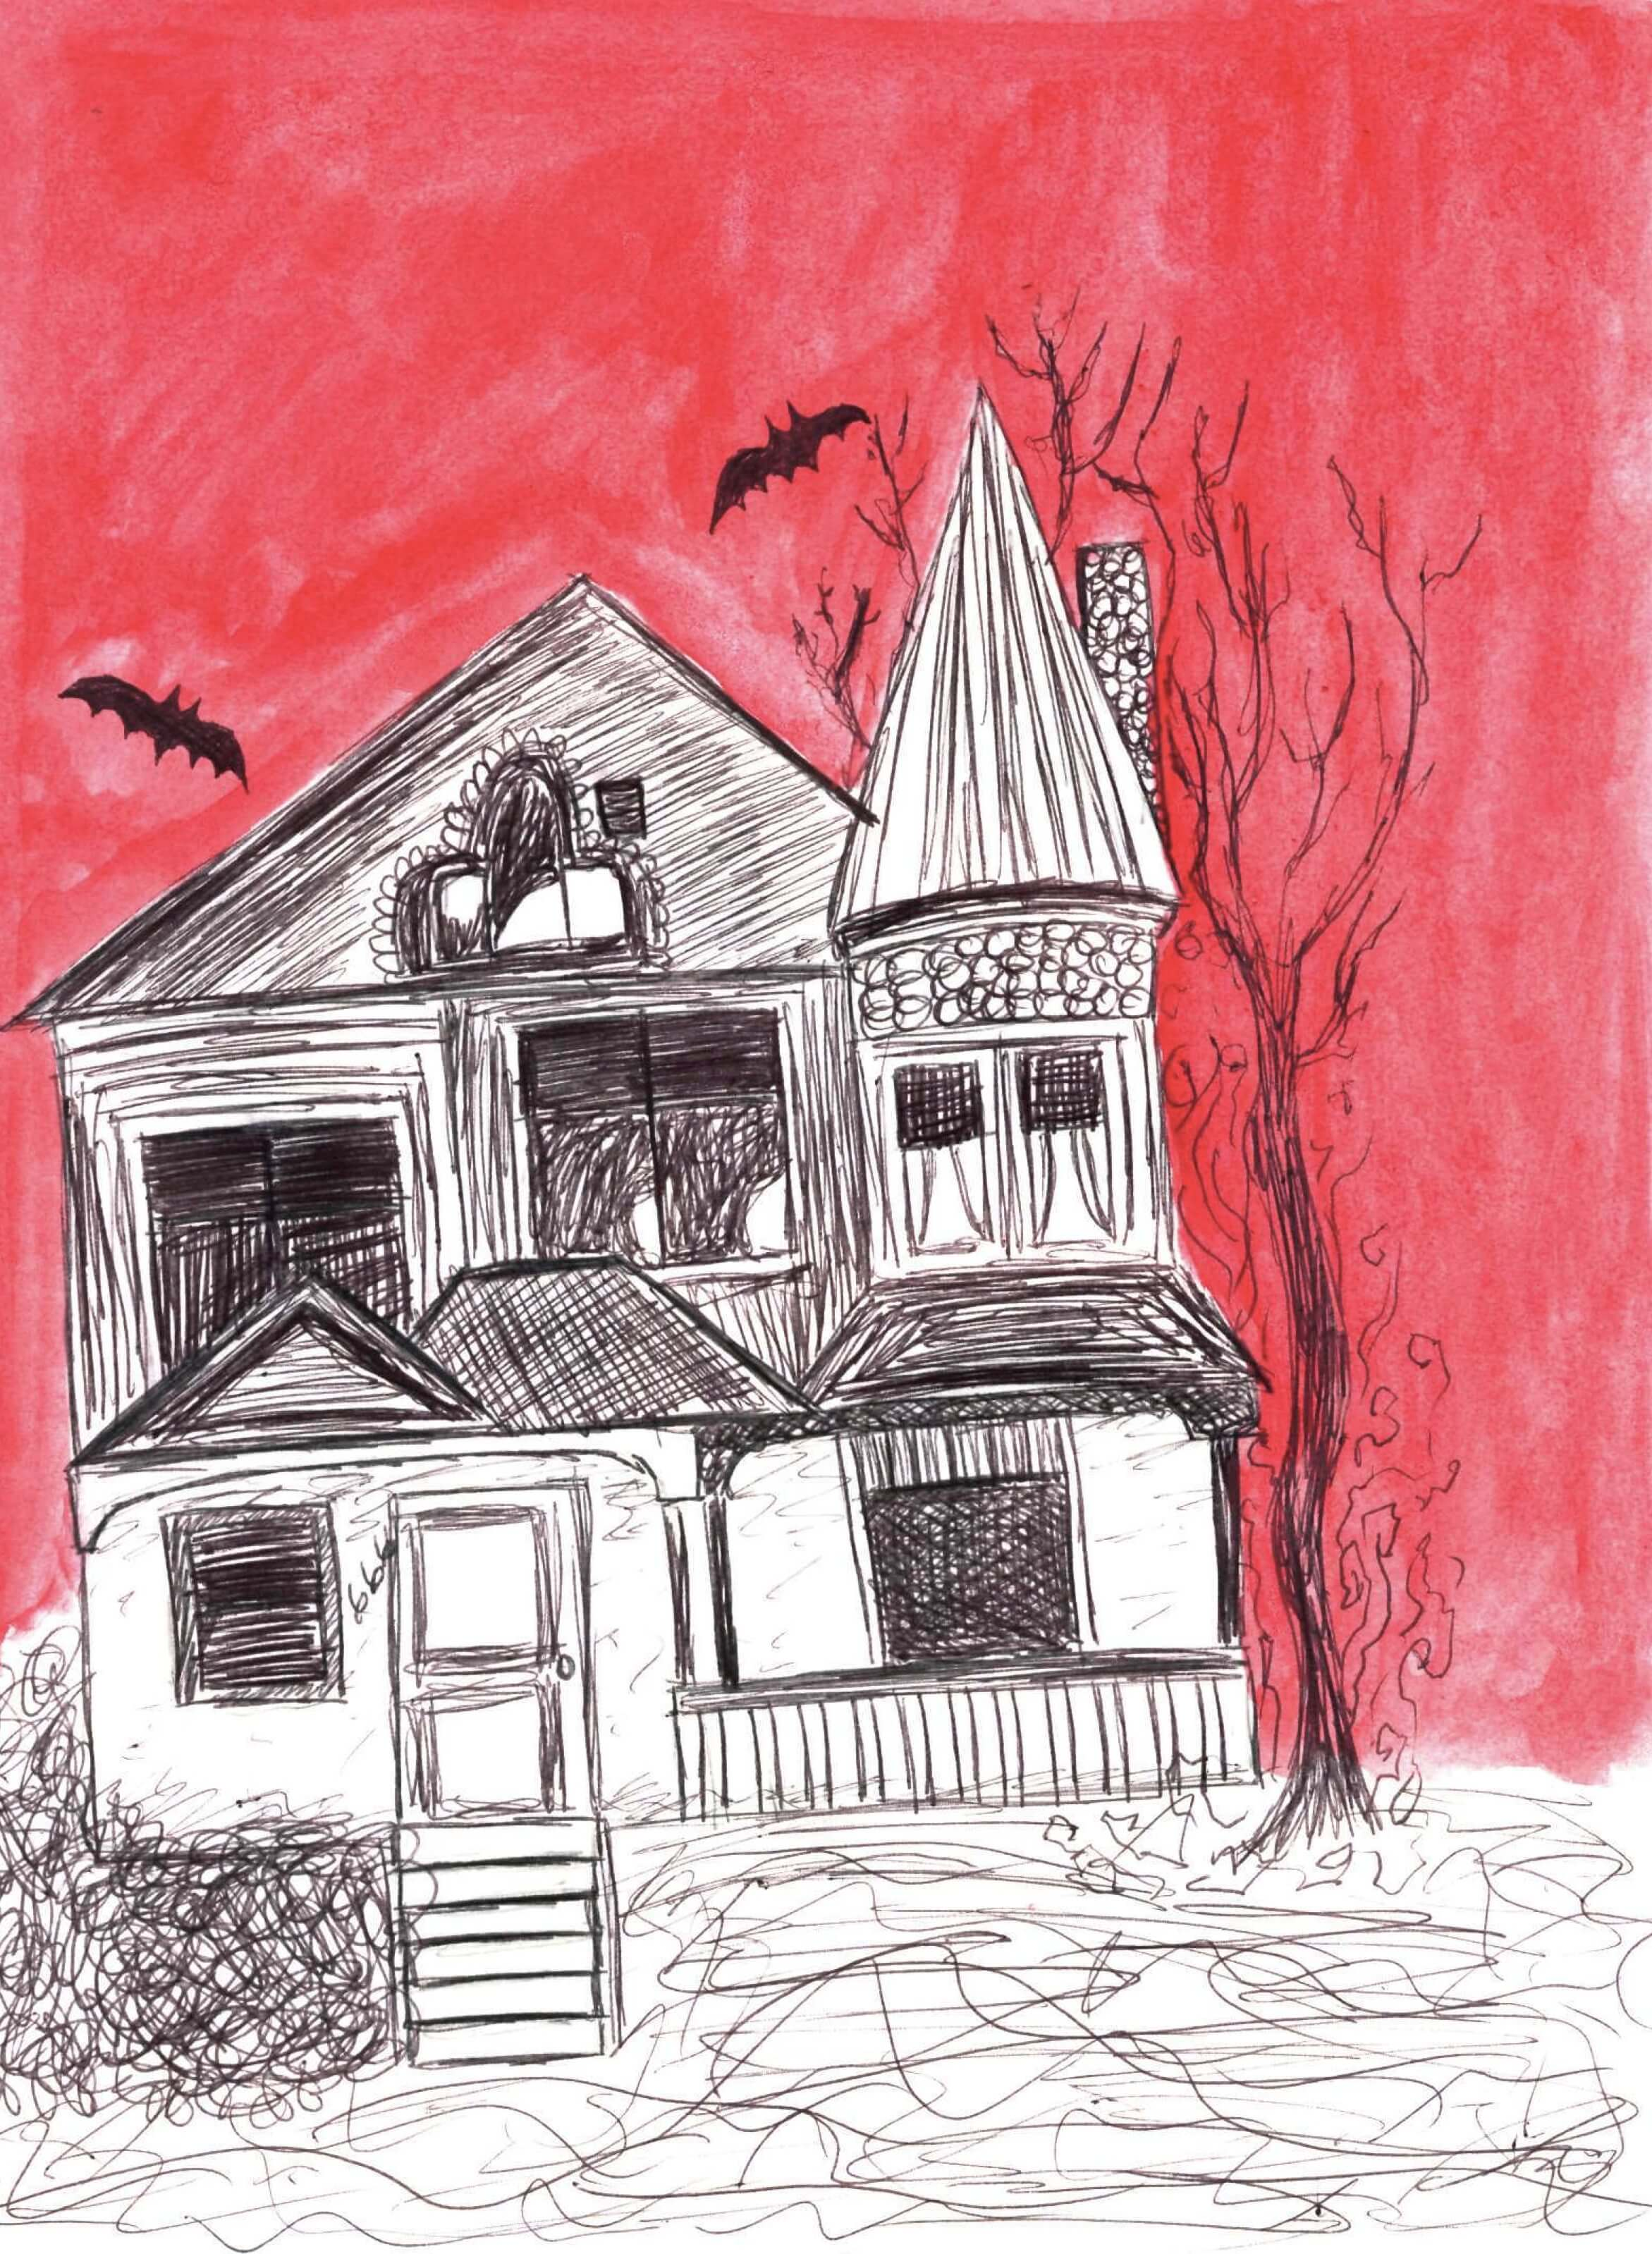 Going to my first haunted house soon! Looking forward to getting spooked! I also got invited to a halloween party for the first time! —Amil